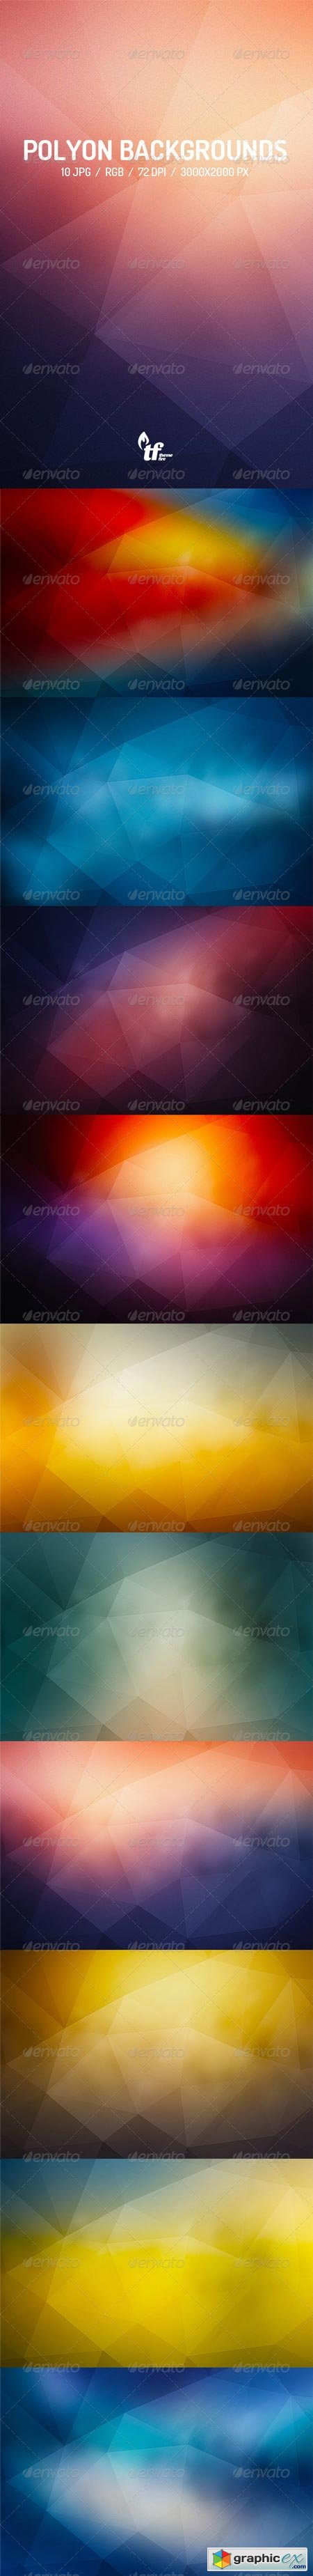 Abstract Poly Backgrounds 7821665